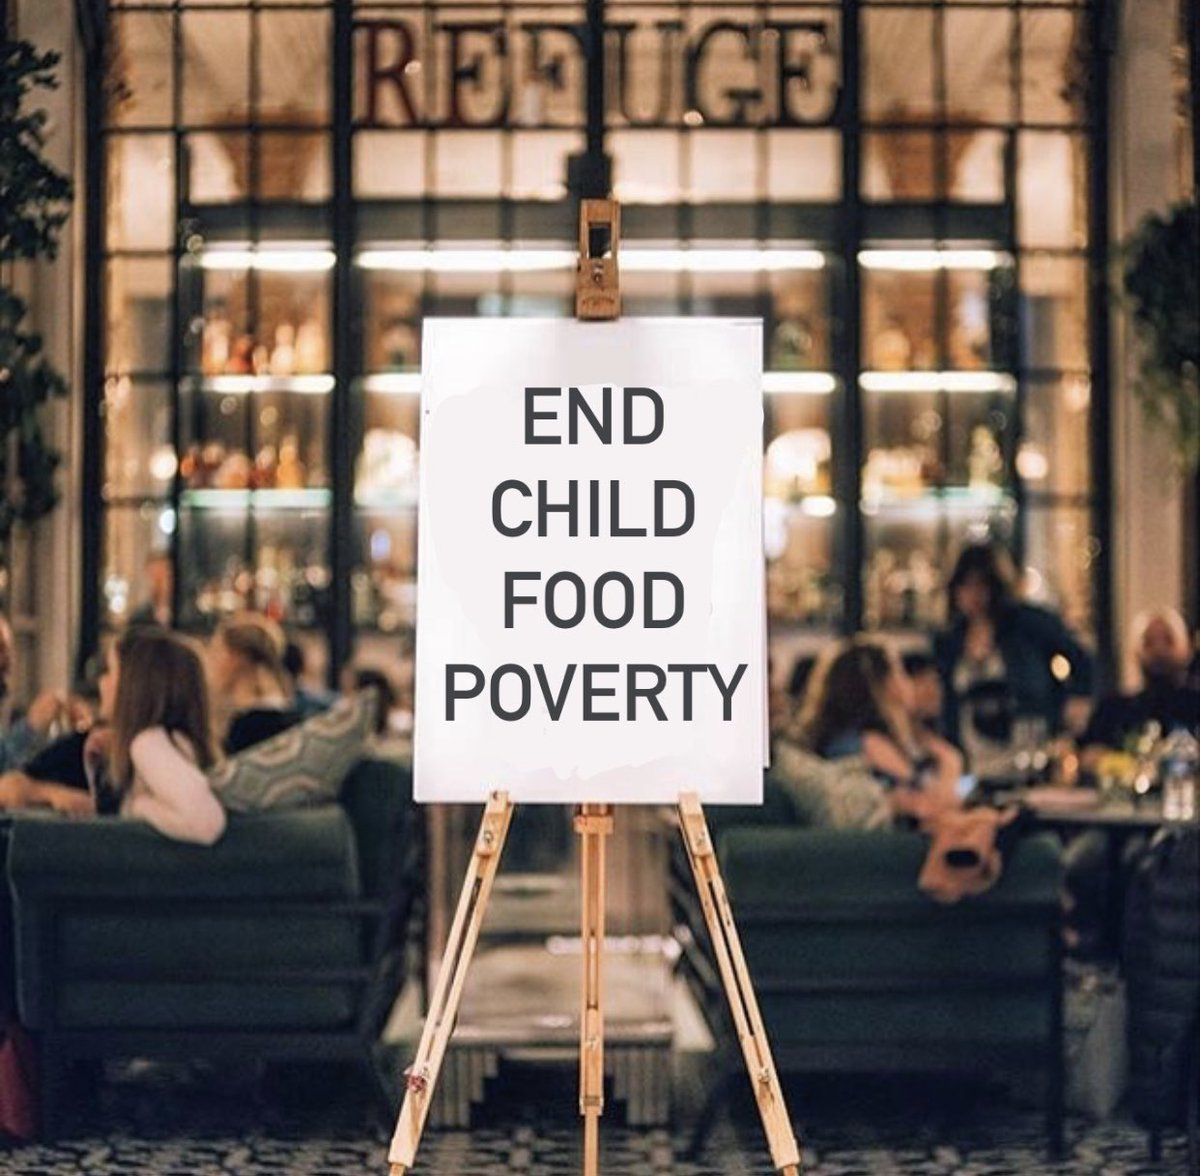 #ENDCHILDFOODPOVERTY No restrictions, no questions, just ask. You can email us to book or just drop 12pm-6pm during half term. We'll provide a nutritious, satisfying meal for any school kids who need it.. + a brew on us for parents/ guardians! We're in this together ❤️